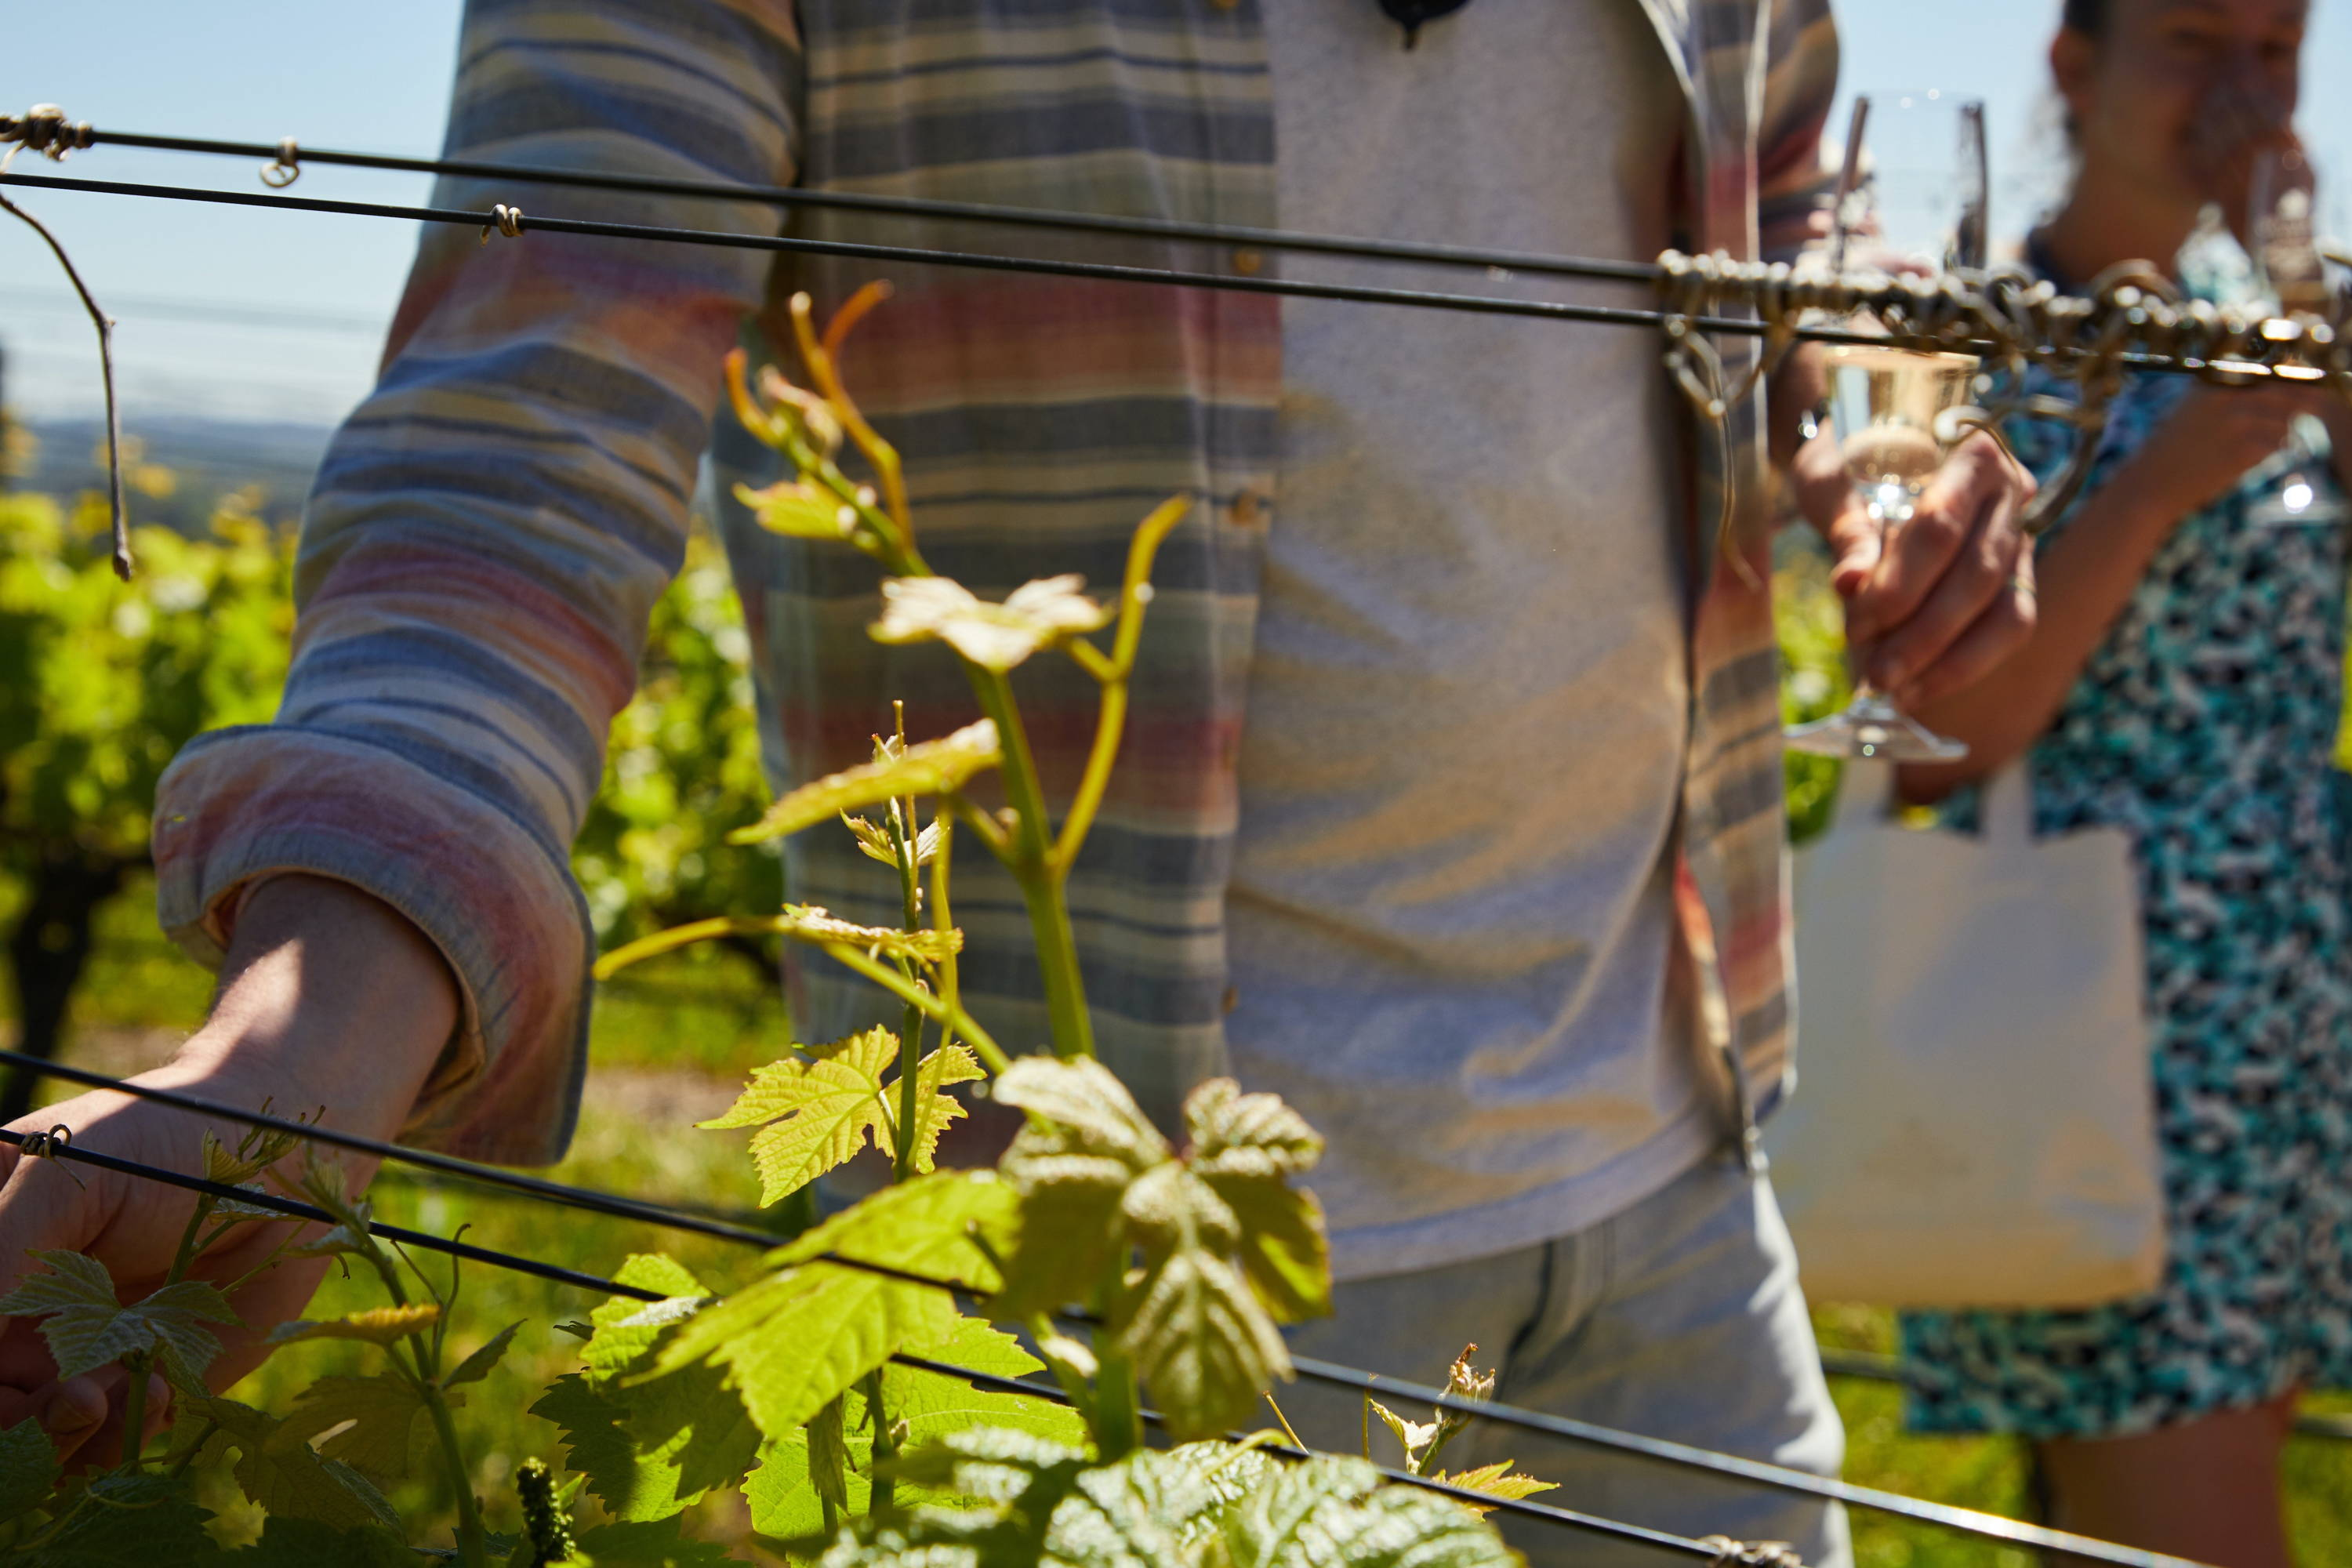 A hard Sauvignon Blanc grape vine being inspected by a man during wine tasting.